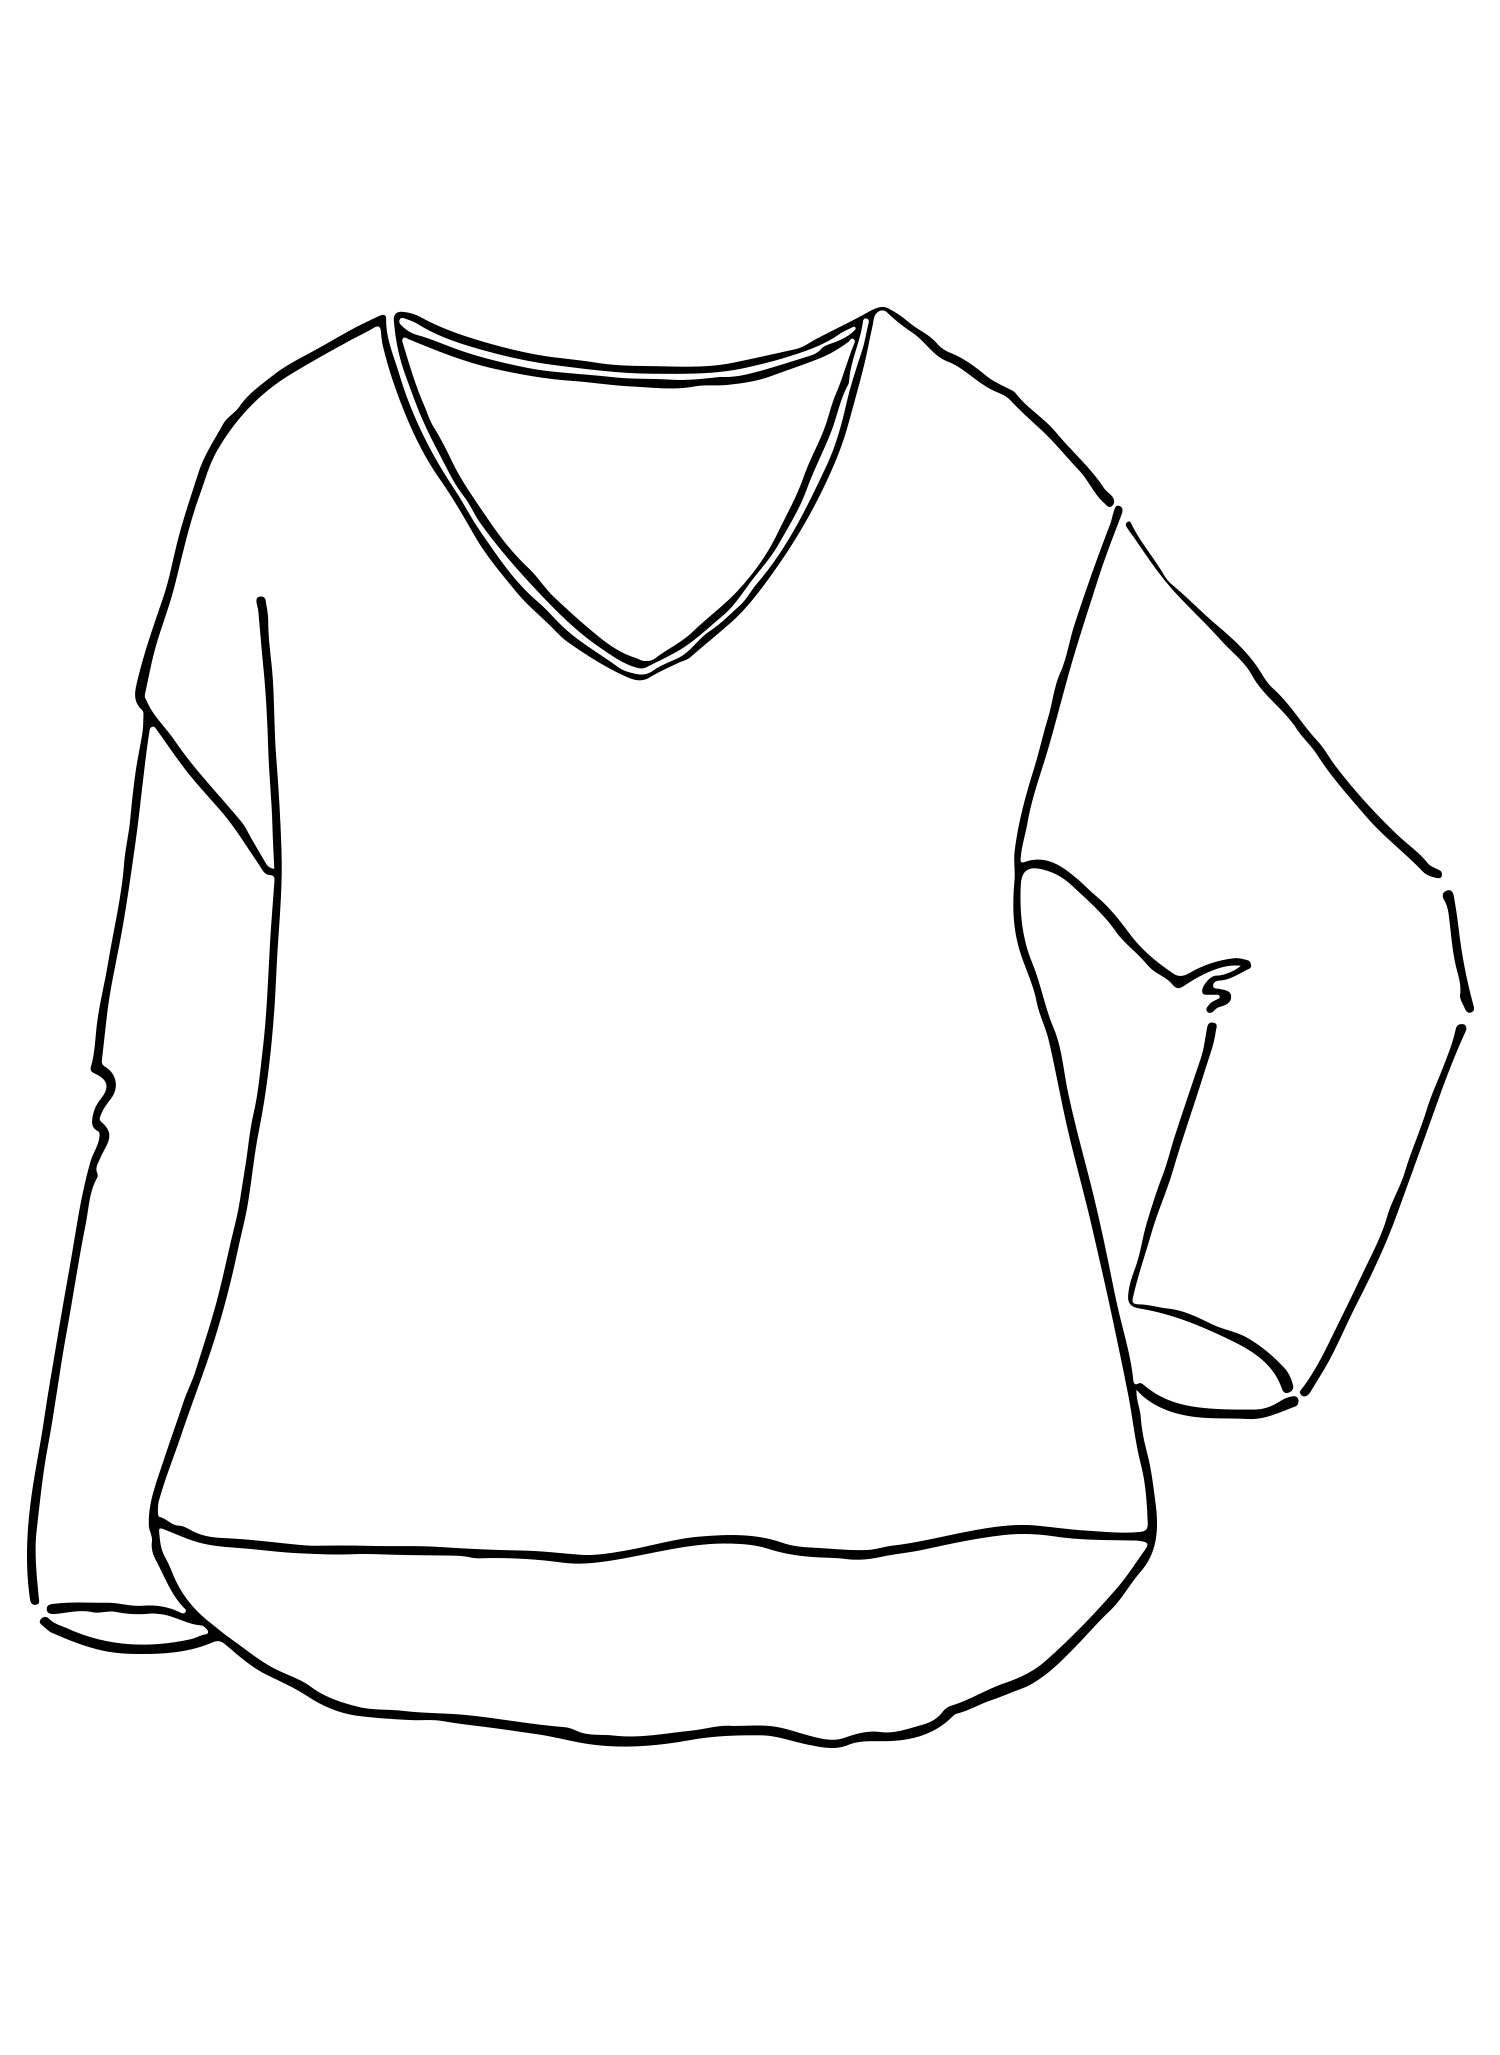 Whispy Pullover sketch image